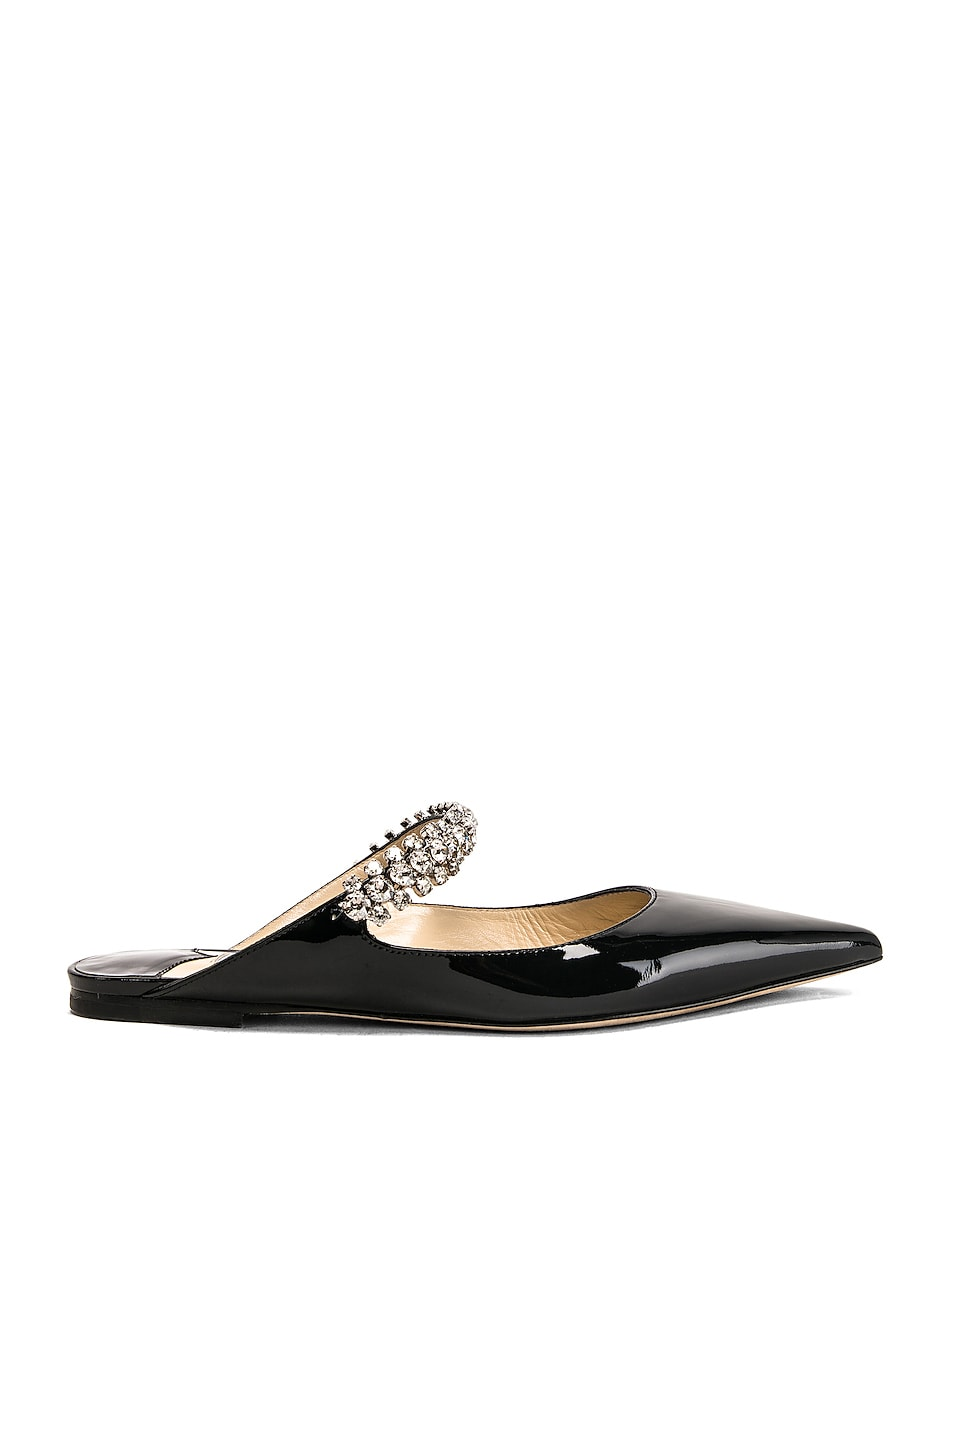 Image 1 of Jimmy Choo Patent Leather Bing Flat in Black